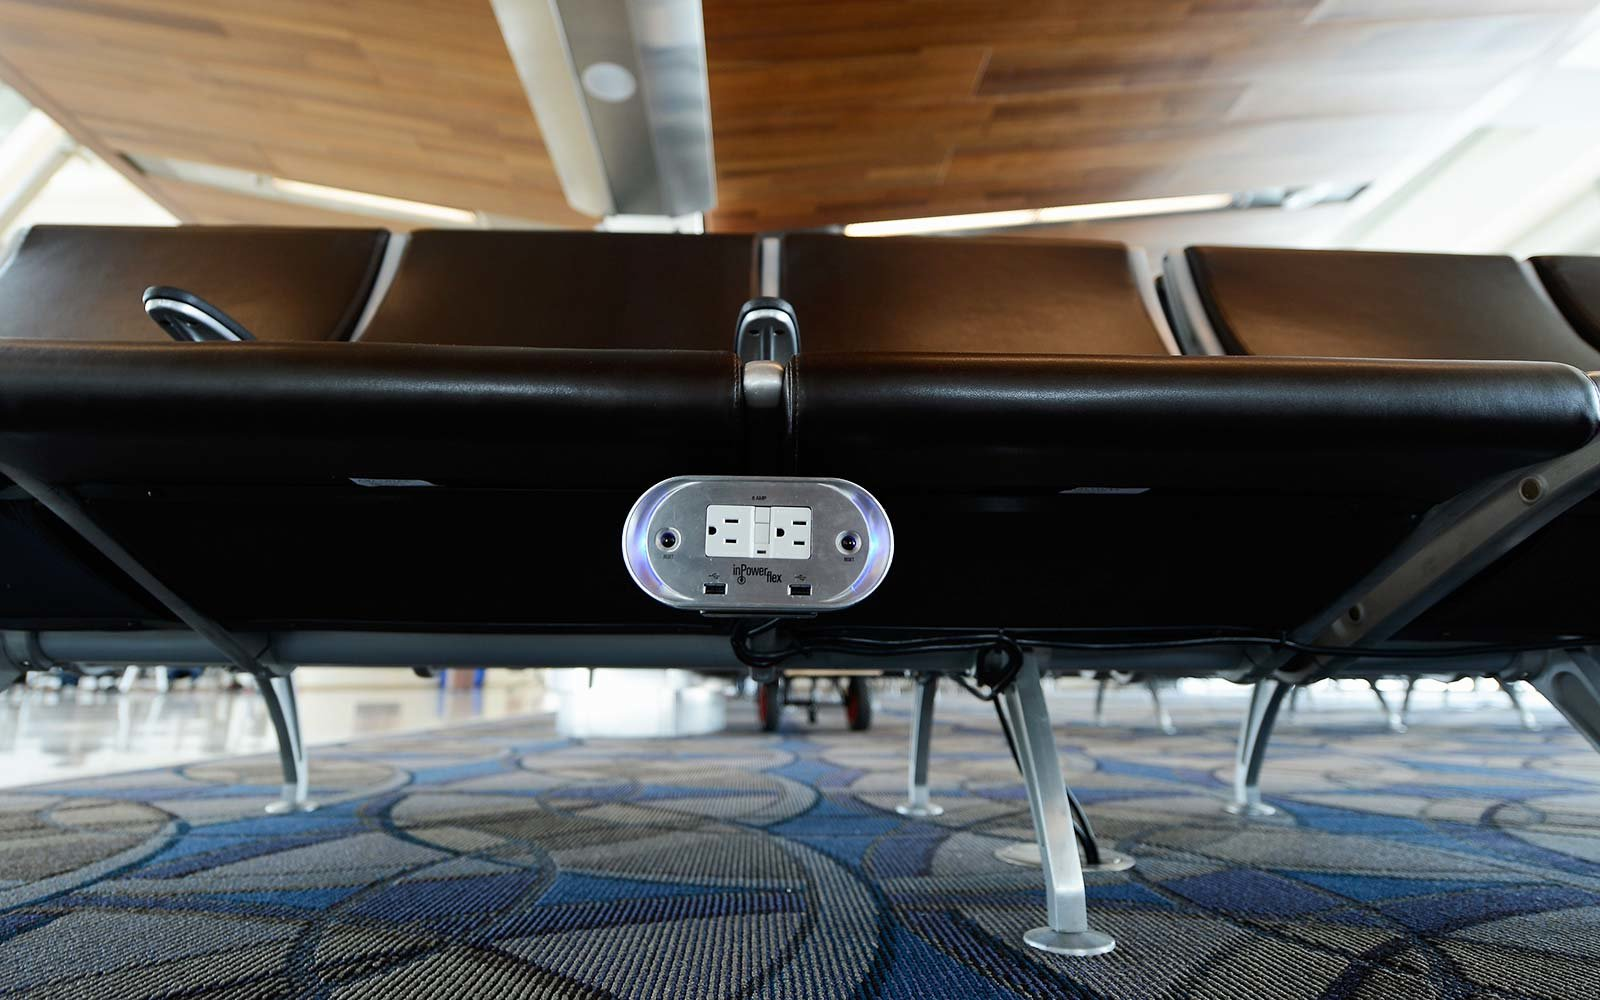 Power outlets are placed under every bench of the new north concourse the Tom Bradley International Terminal at Los Angeles